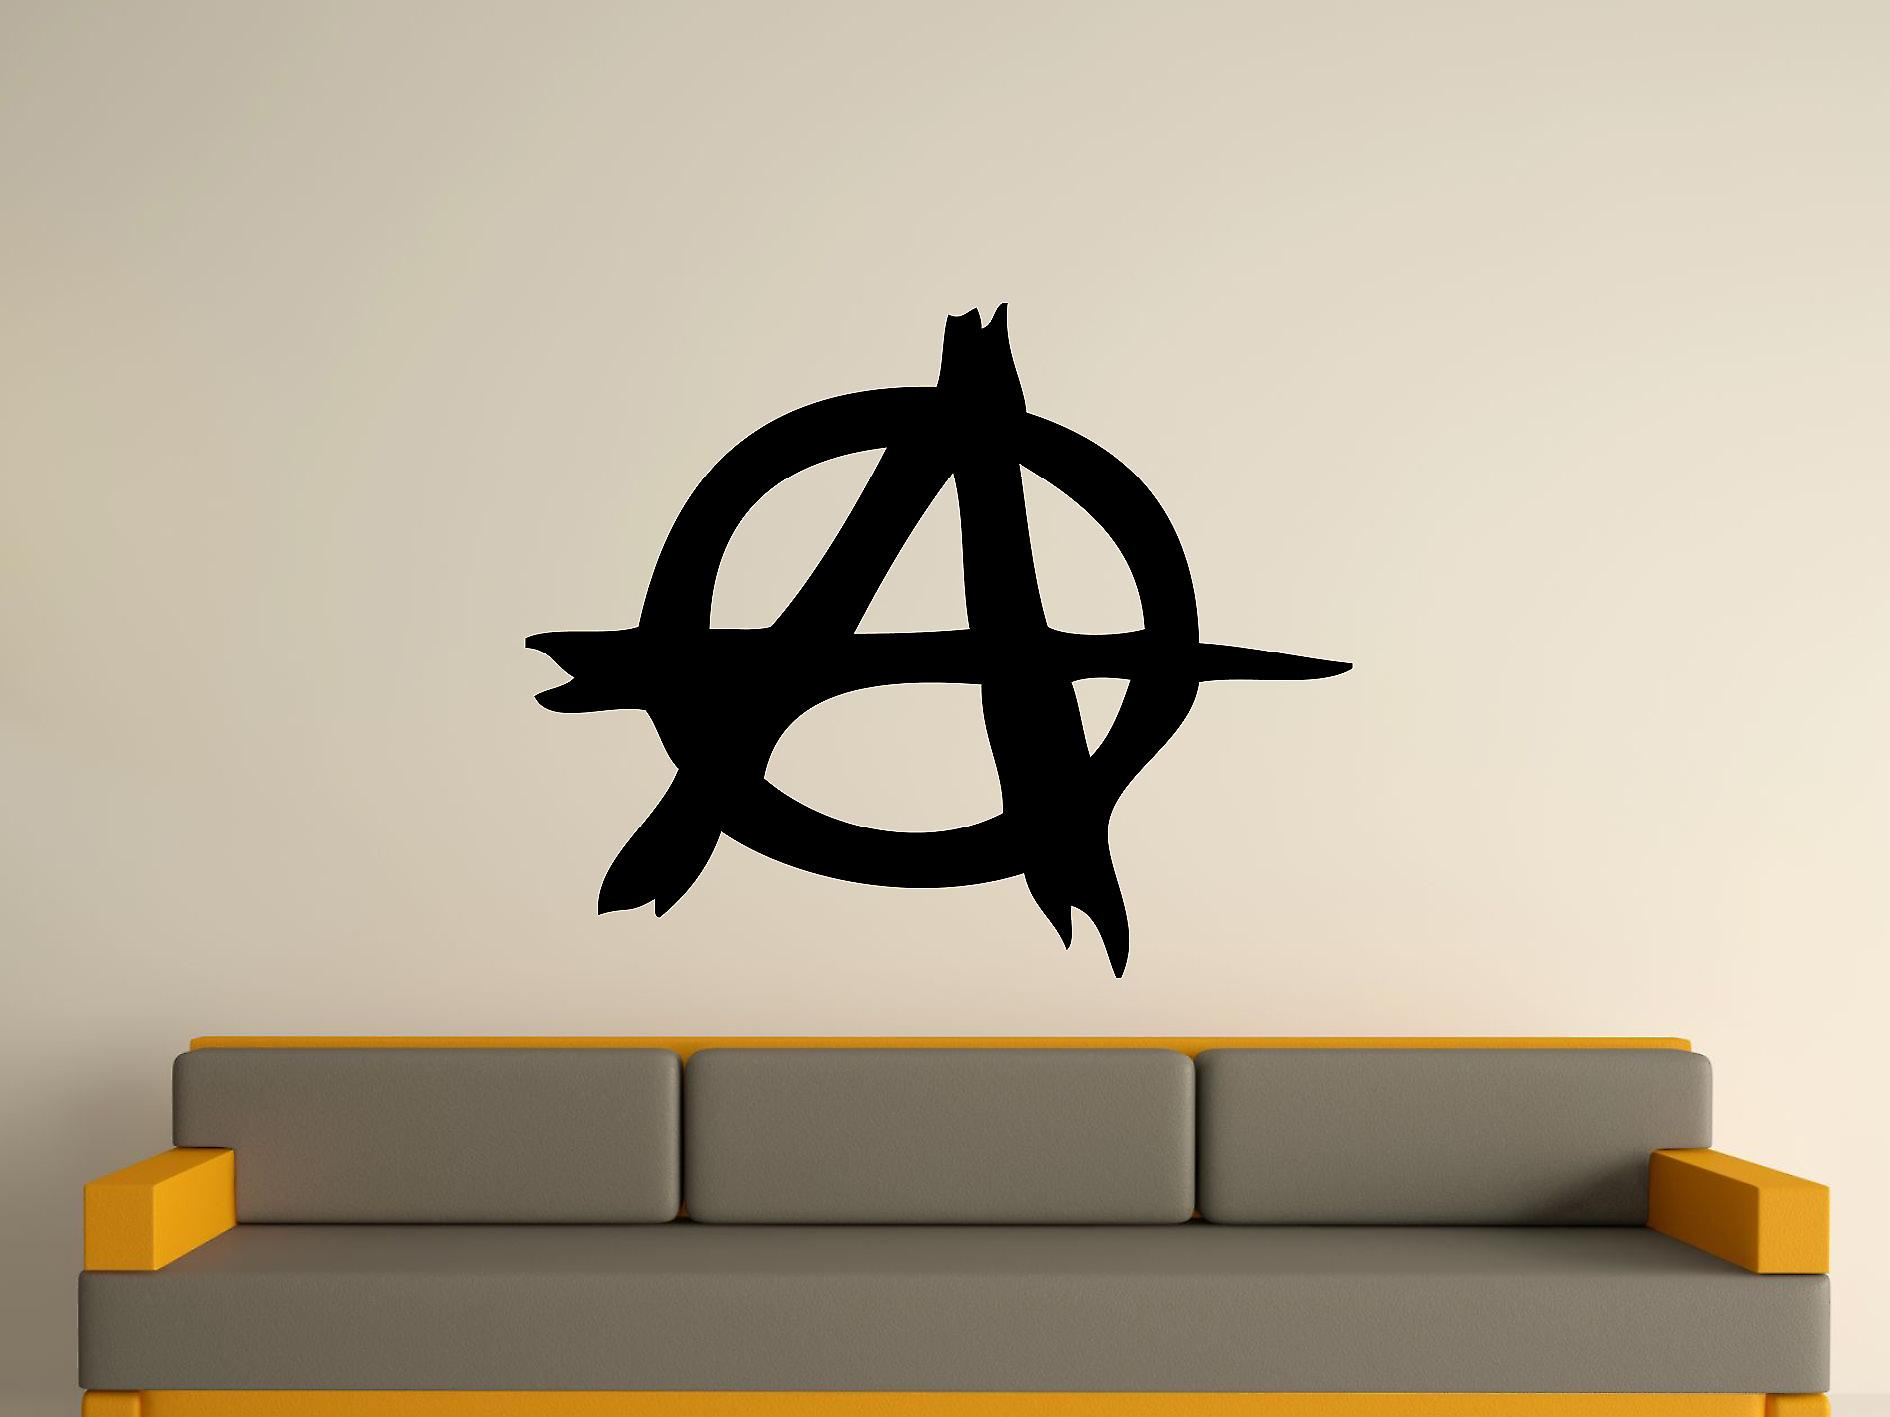 Anarchie Symbol Wall Art Sticker - schwarz